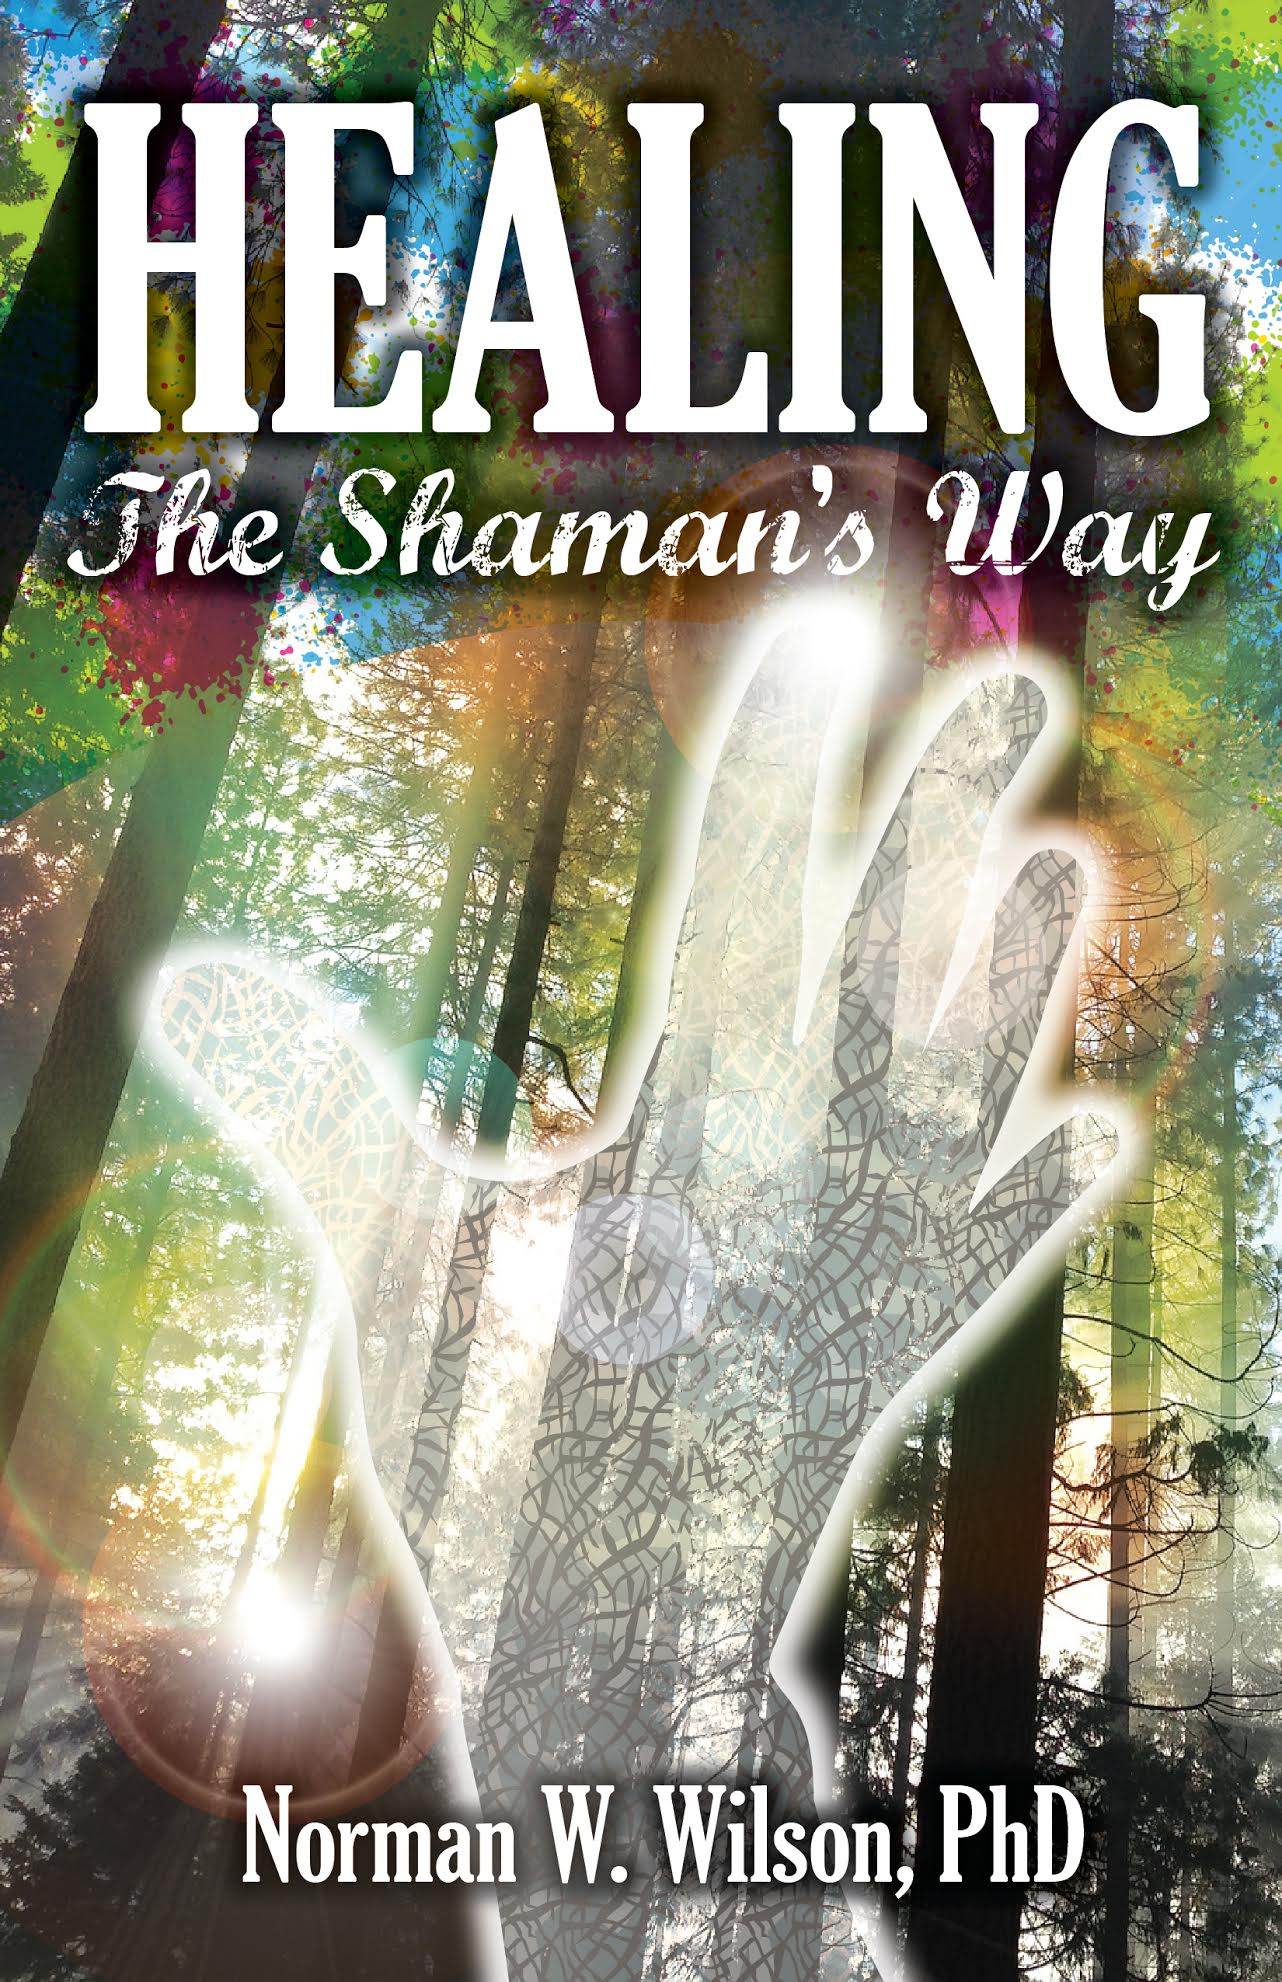 front cover for Healing The Shaman's Way.jpg